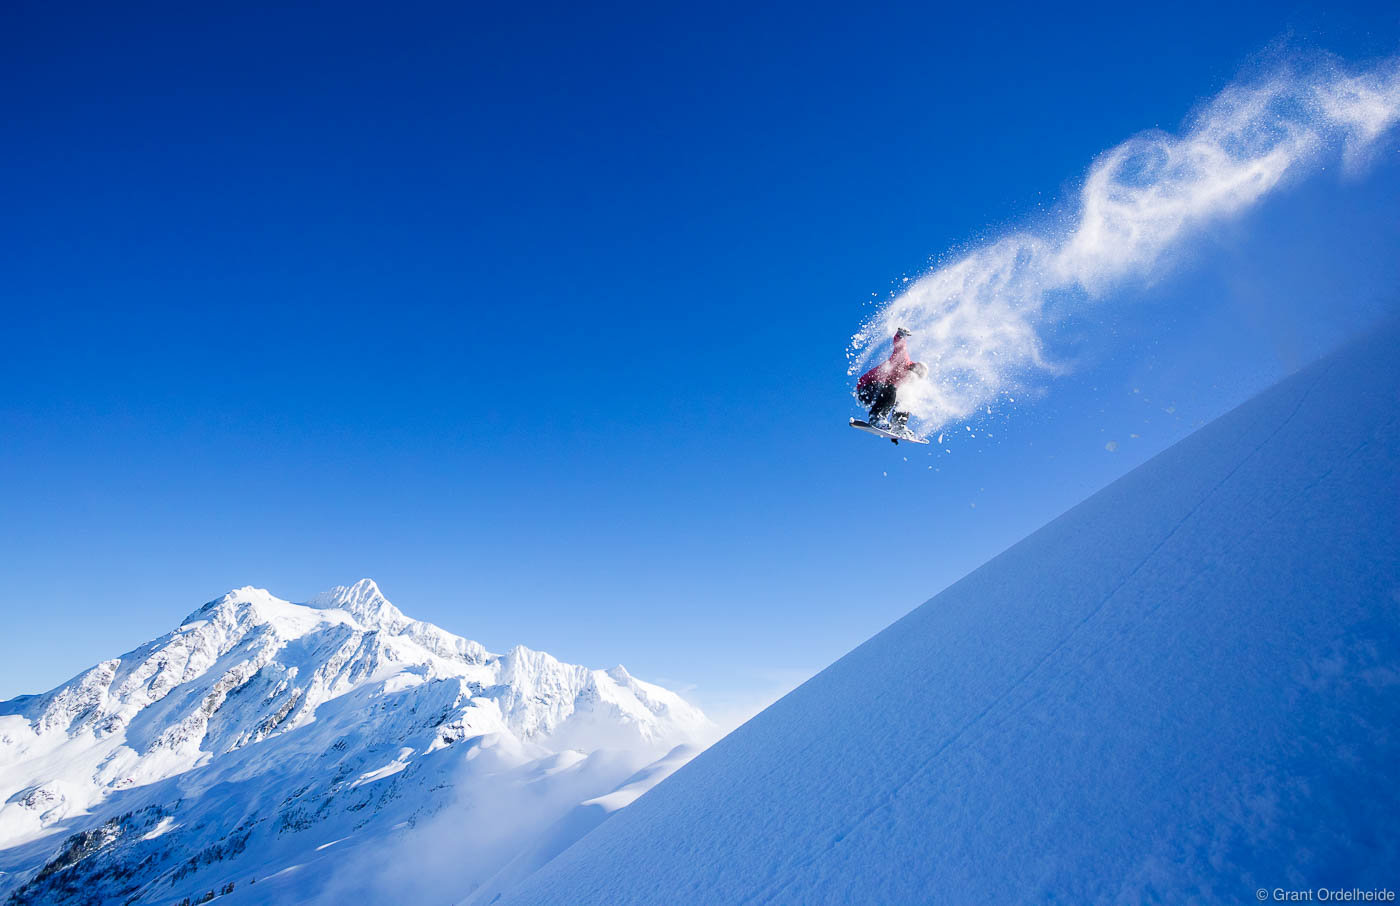 mt. shuksan, backside, one-eighty, snowboarder, baker, washington, grab, method, natural, wind, lip, feature, photo